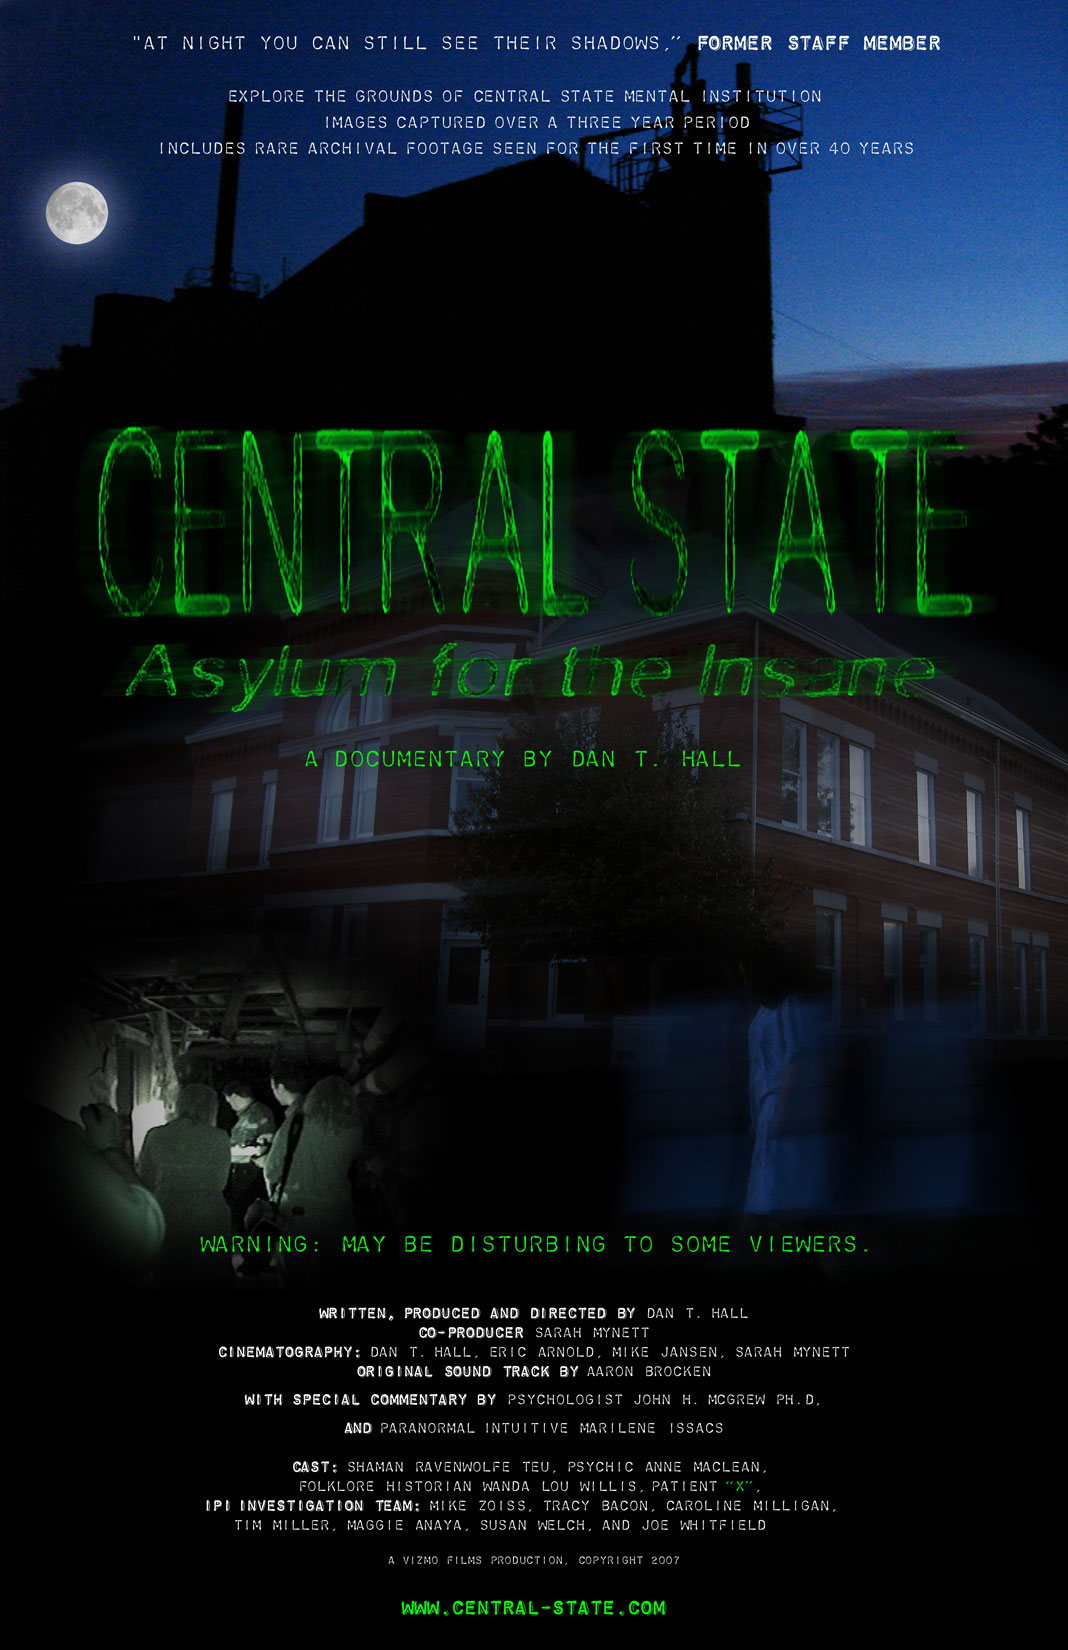 IPI – Central State Hospital Indianapolis, Indiana Tunnels Central State Indianapolis Map on